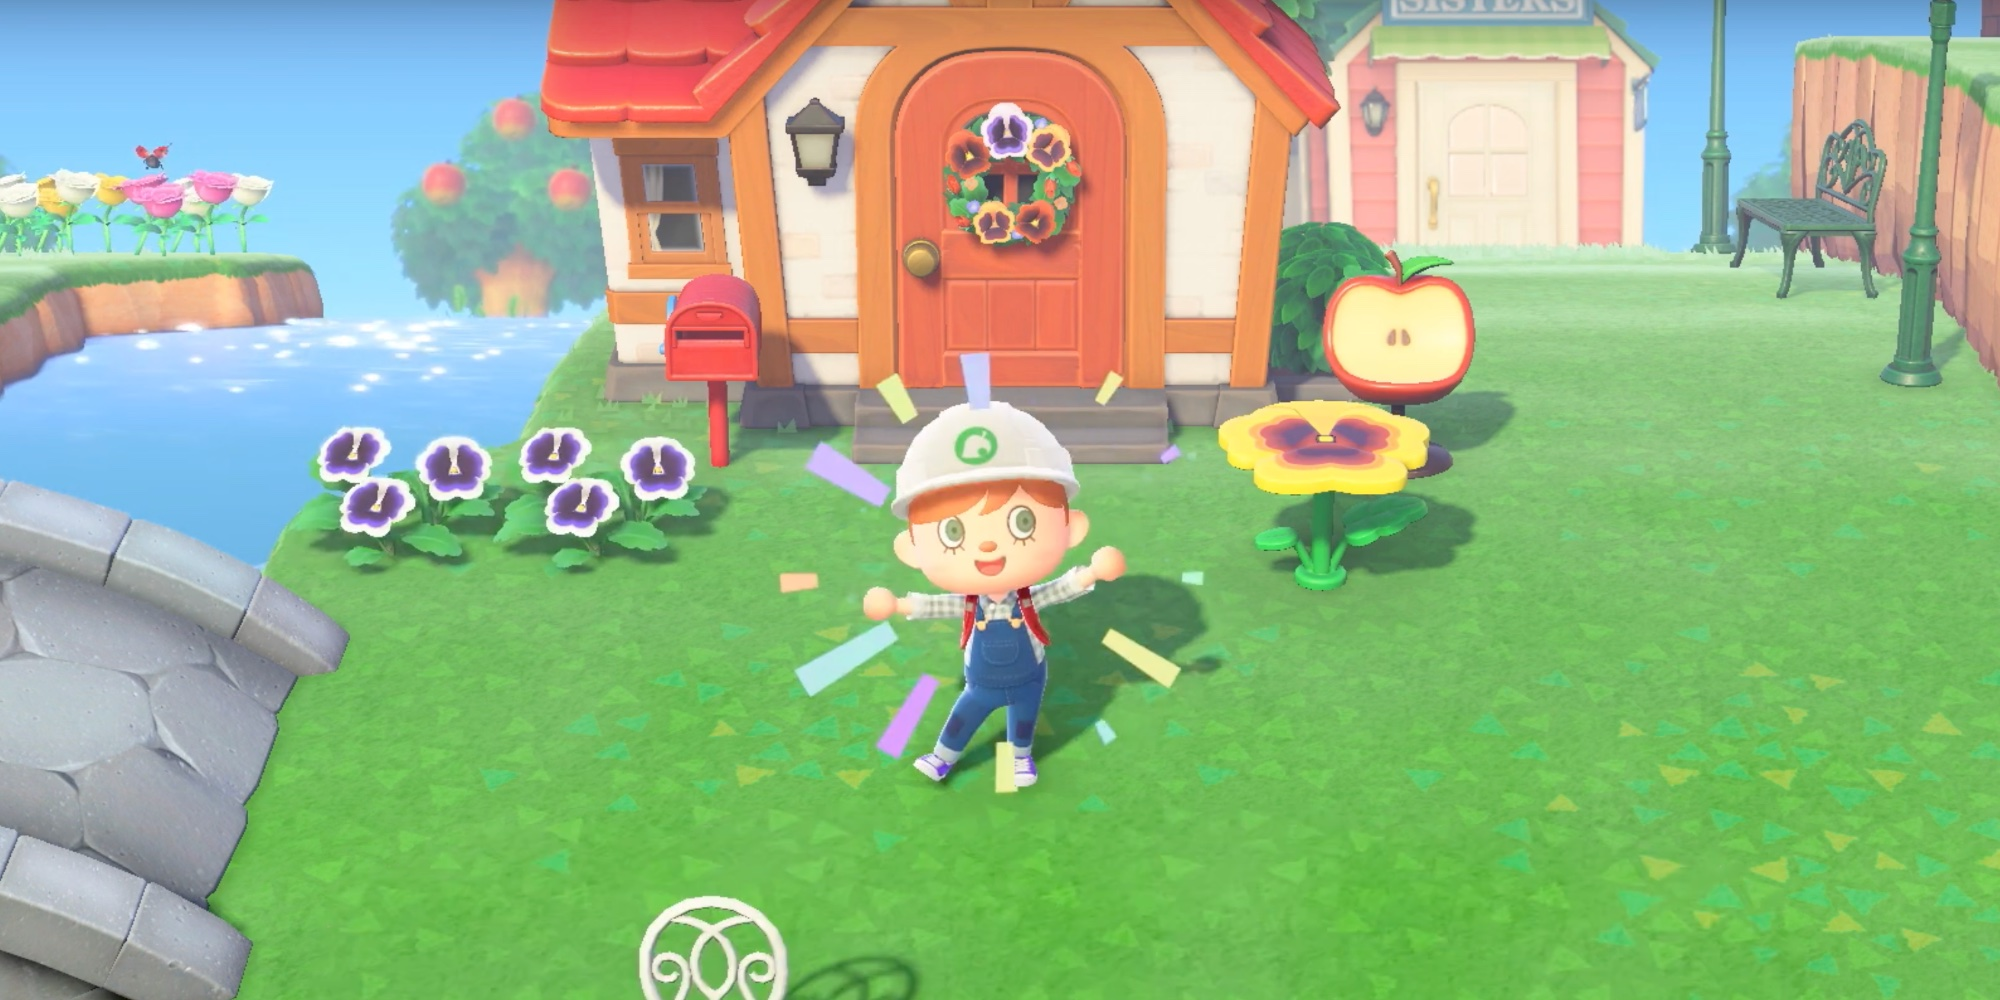 Nintendo Direct Animal Crossing showcases new gameplay - 9to5Toys